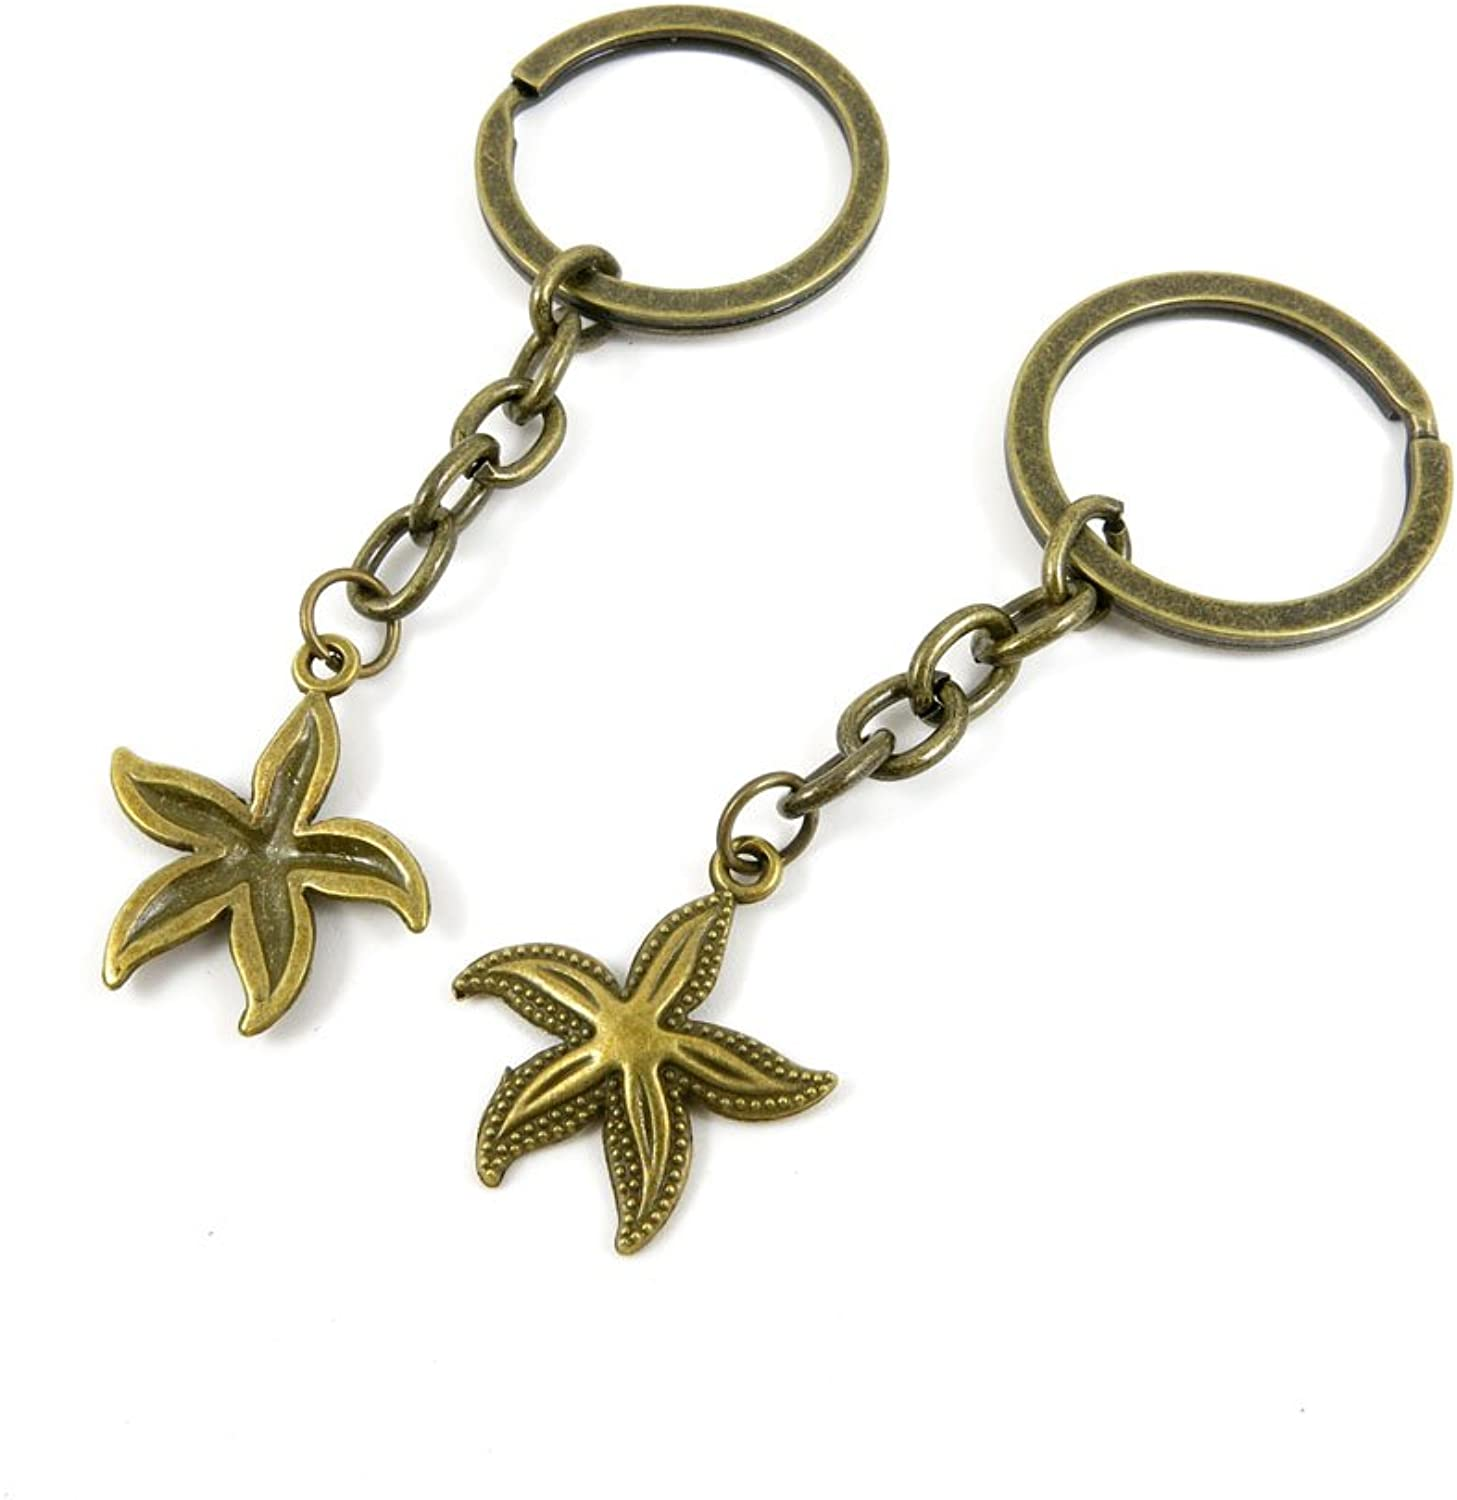 250 Pieces Fashion Jewelry Keyring Keychain Door Car Key Tag Ring Chain Supplier Supply Wholesale Bulk Lots I3FV6 Starfish Sea Star